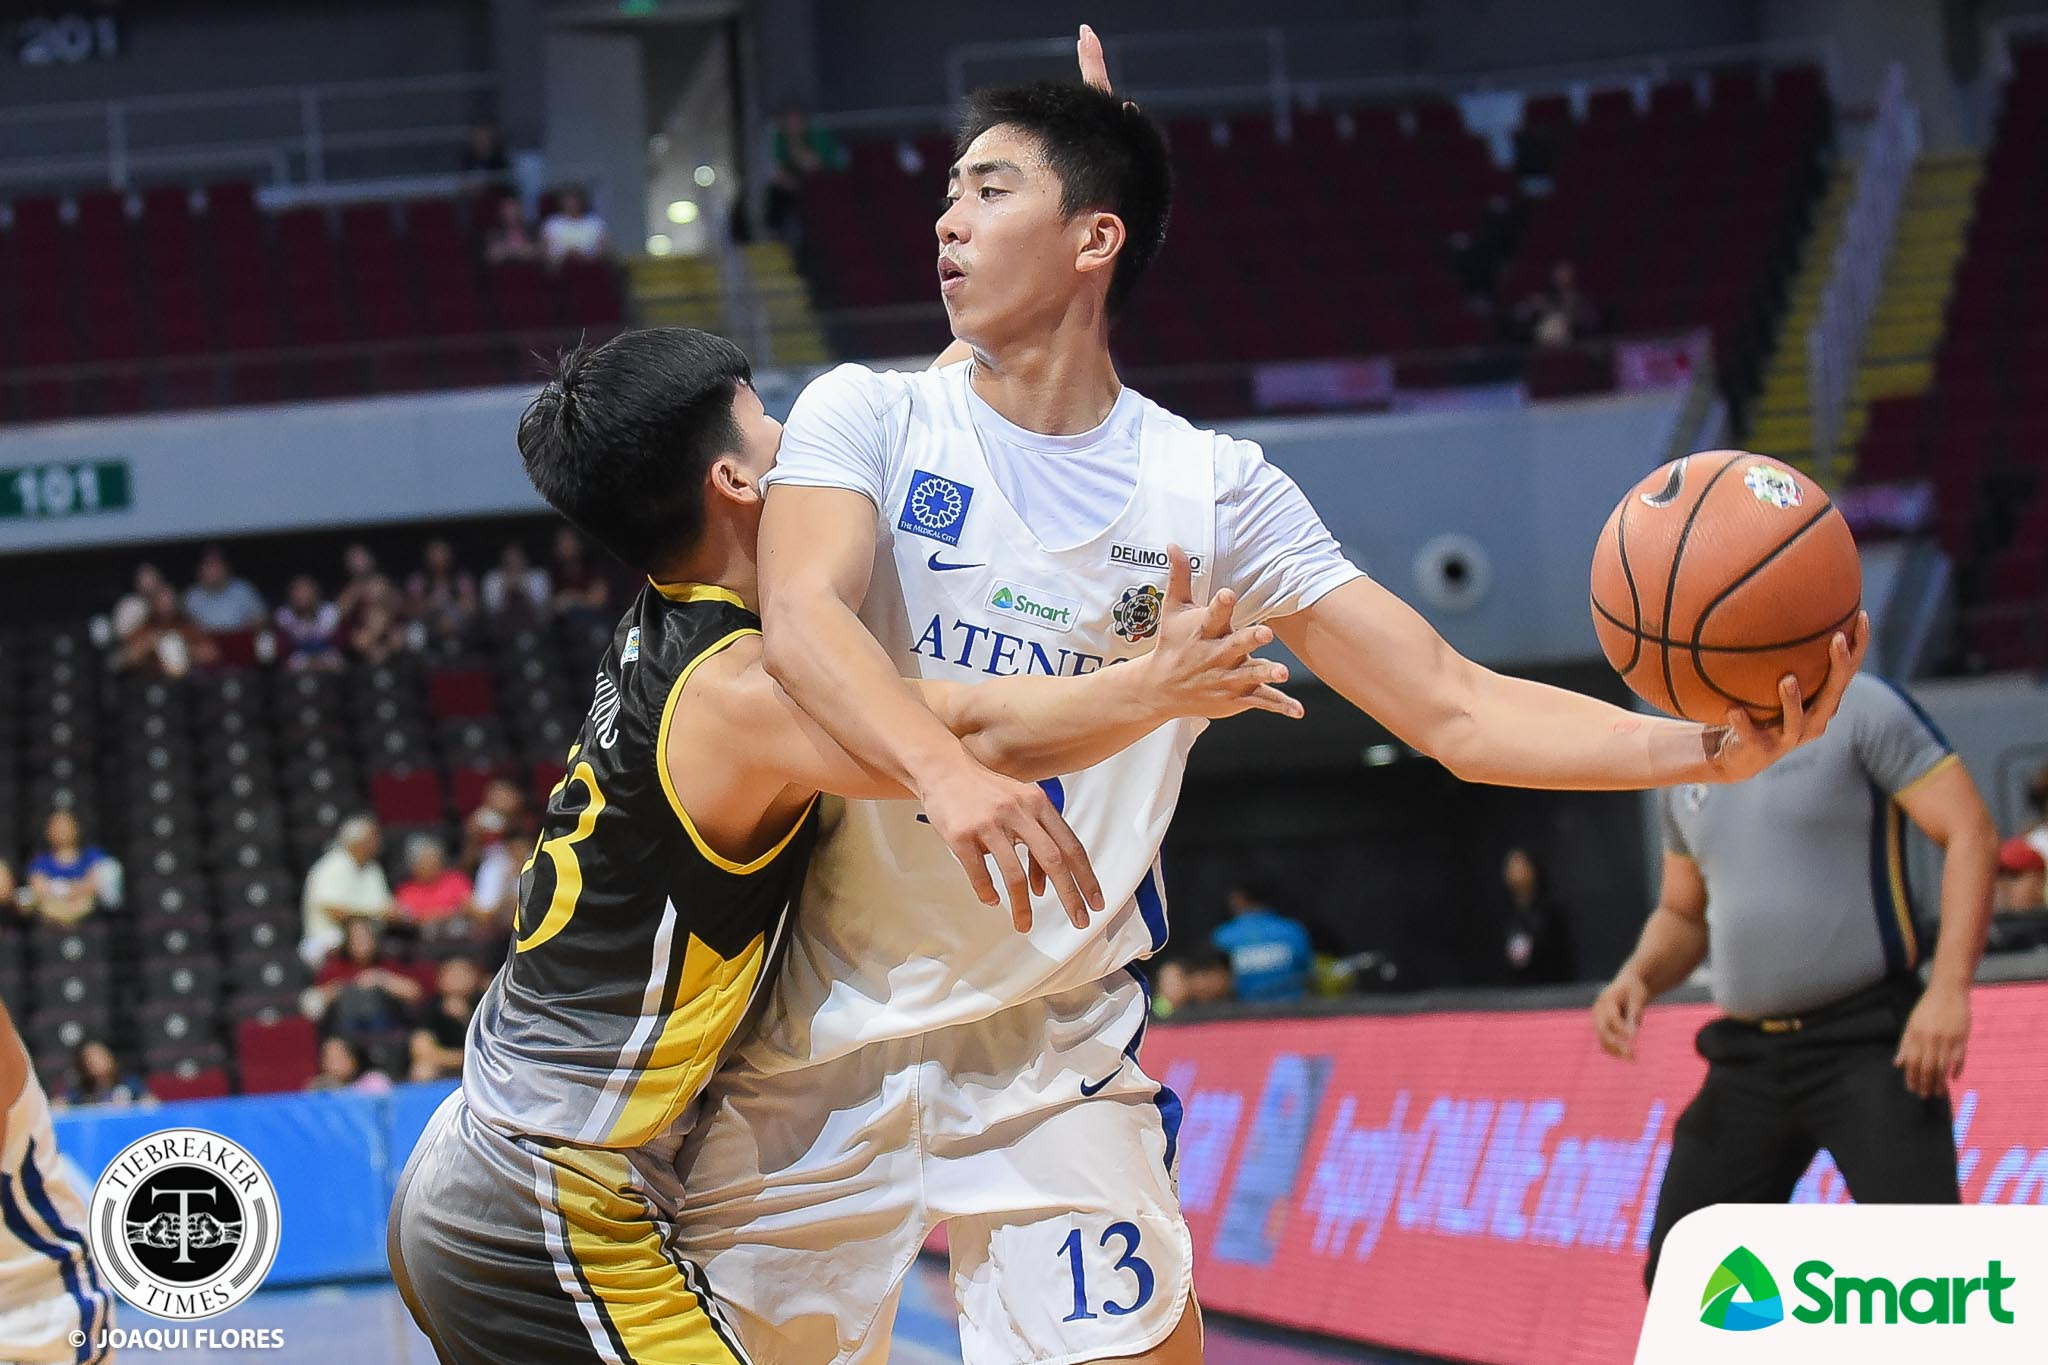 Tiebreaker Times Ateneo gives UST rude exit with 40-point rout ADMU Basketball News UAAP UST  UST Men's Basketball UAAP Season 81 Men's Basketball UAAP Season 81 Tobi Agustin Sandy Arespacochaga Renzo Subido Joshua Marcos Ateneo Men's Basketball Angelo Kouame Aldin Ayo